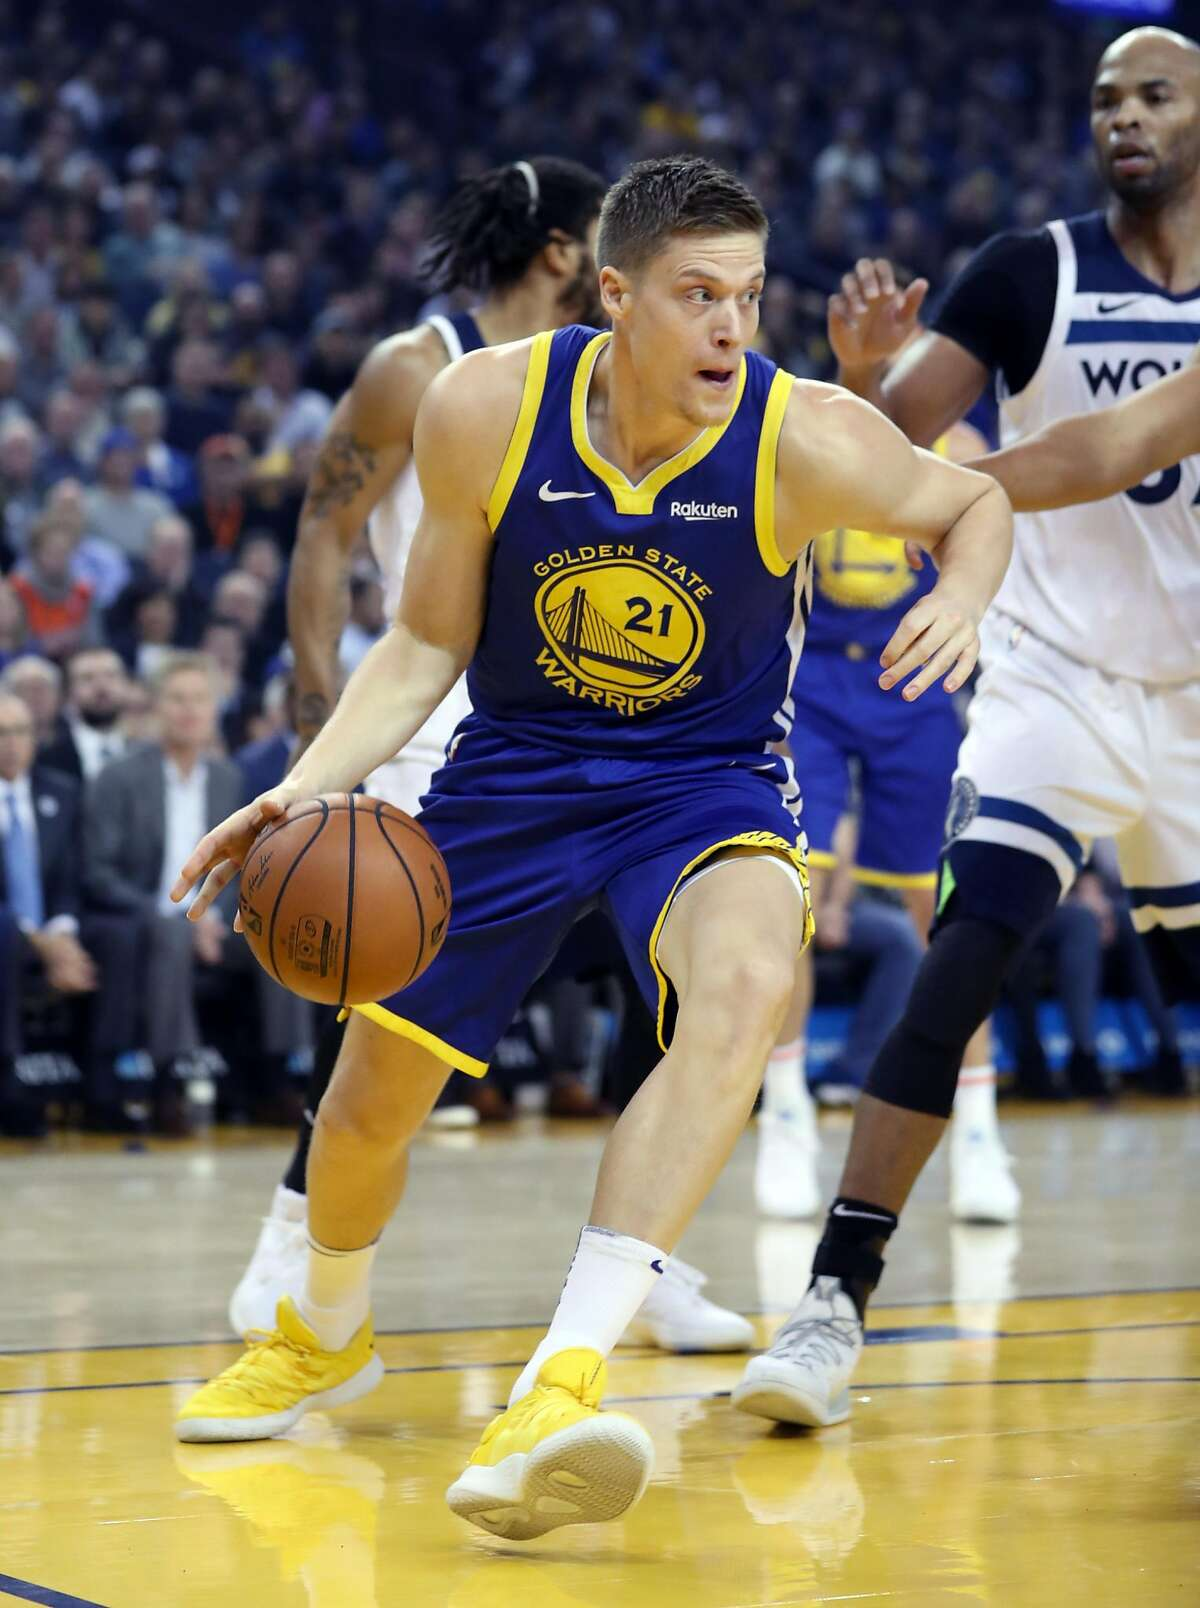 Golden State Warriors' Jonas Jerebko during 116-108 win over Minnesota Timberwolves in NBA game at Oracle Arena in Oakland, Calif. on Monday, December 10, 2018.